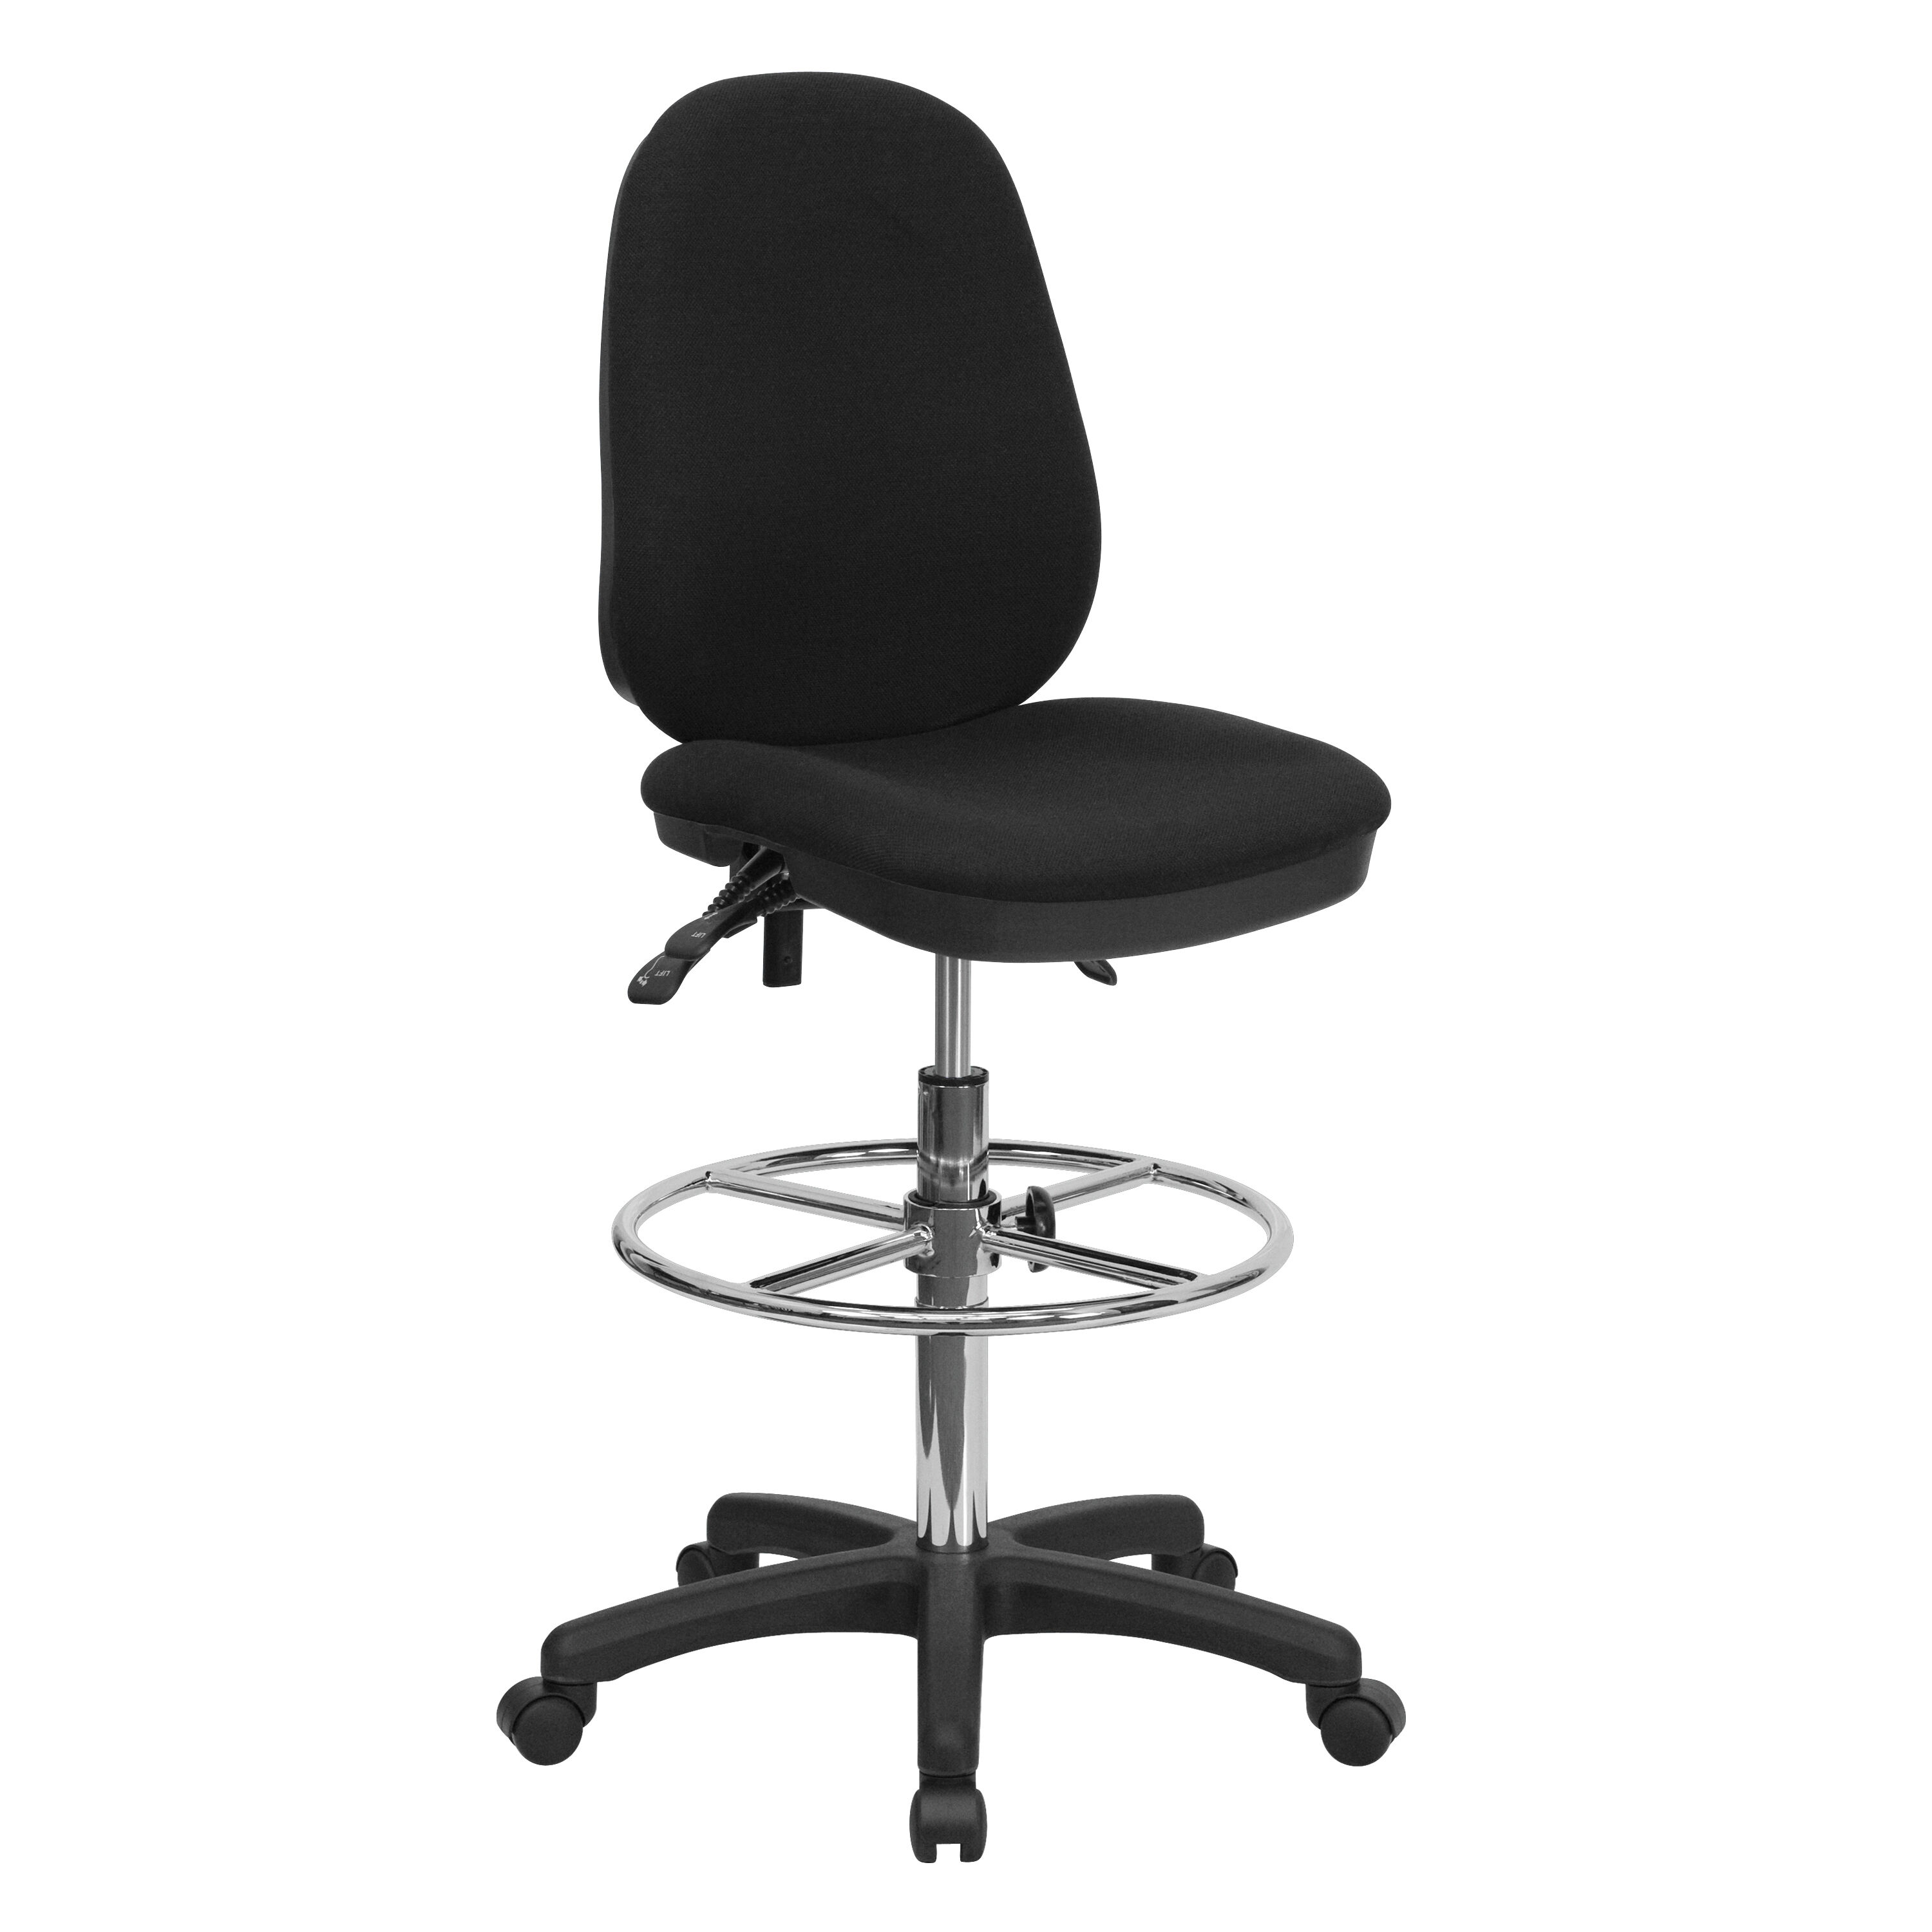 Ordinaire ... Our Black Multifunction Ergonomic Drafting Chair With Adjustable Foot  Ring Is On Sale Now.